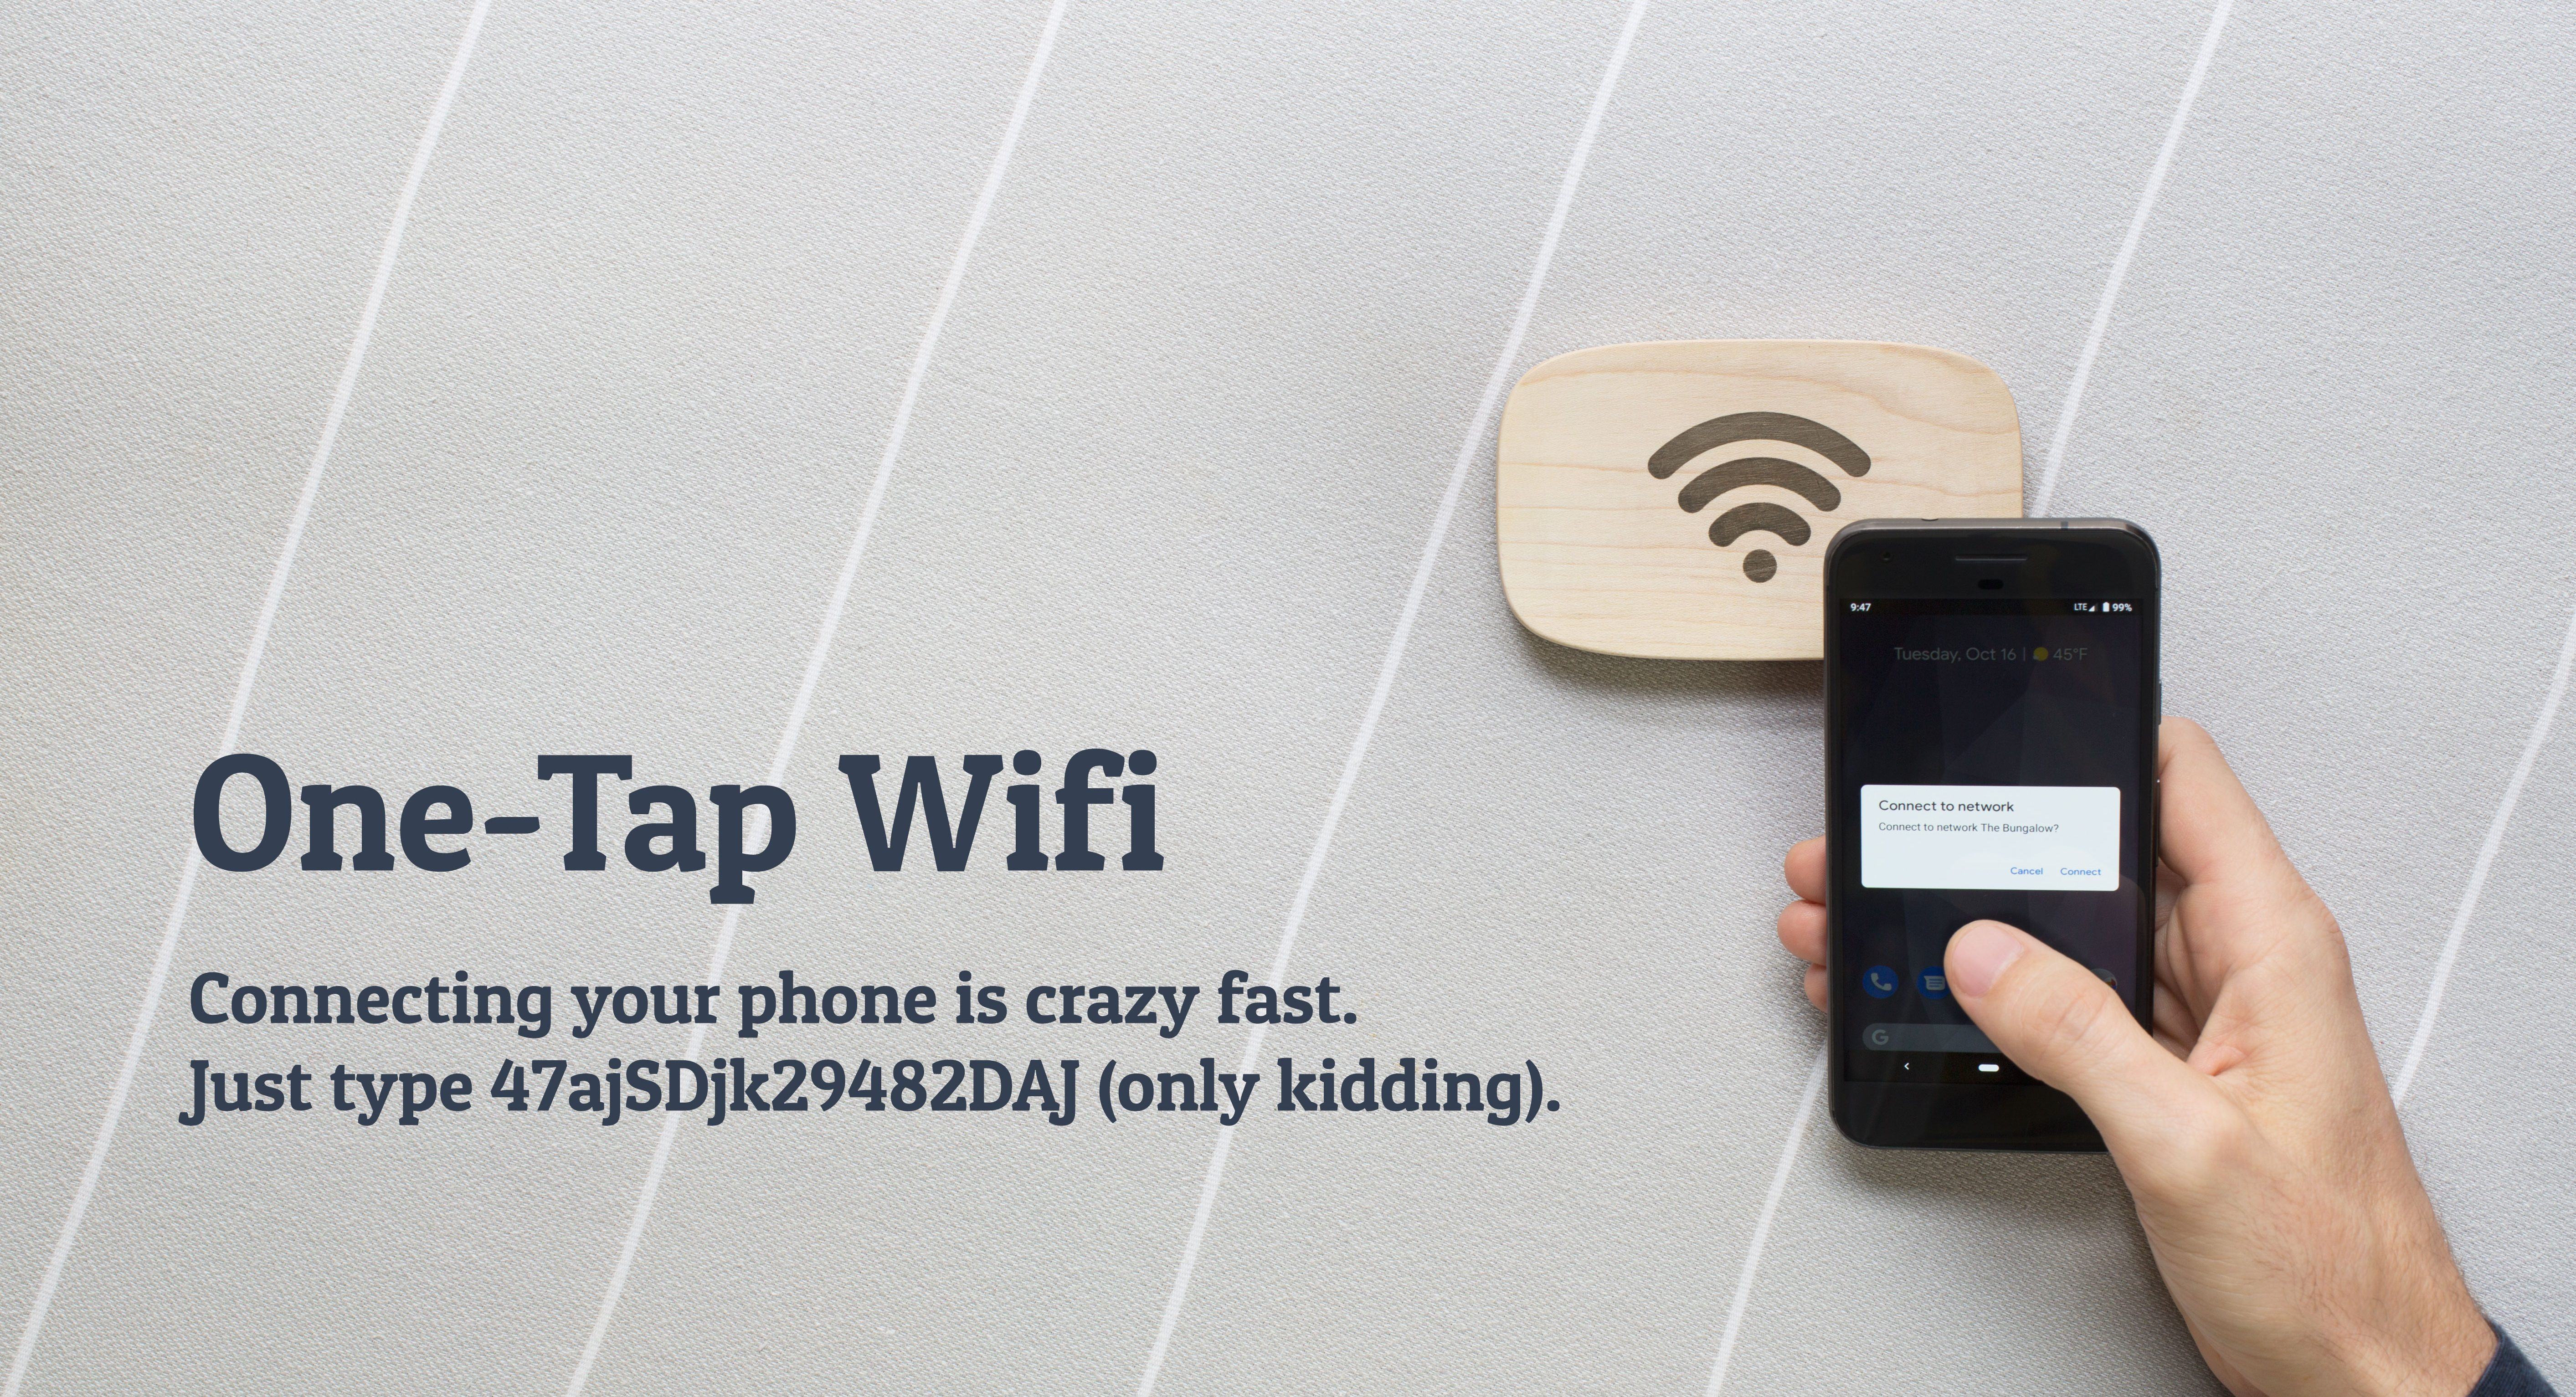 NFC-enabled wooden puck connects you securely to Wi-Fi with a tap